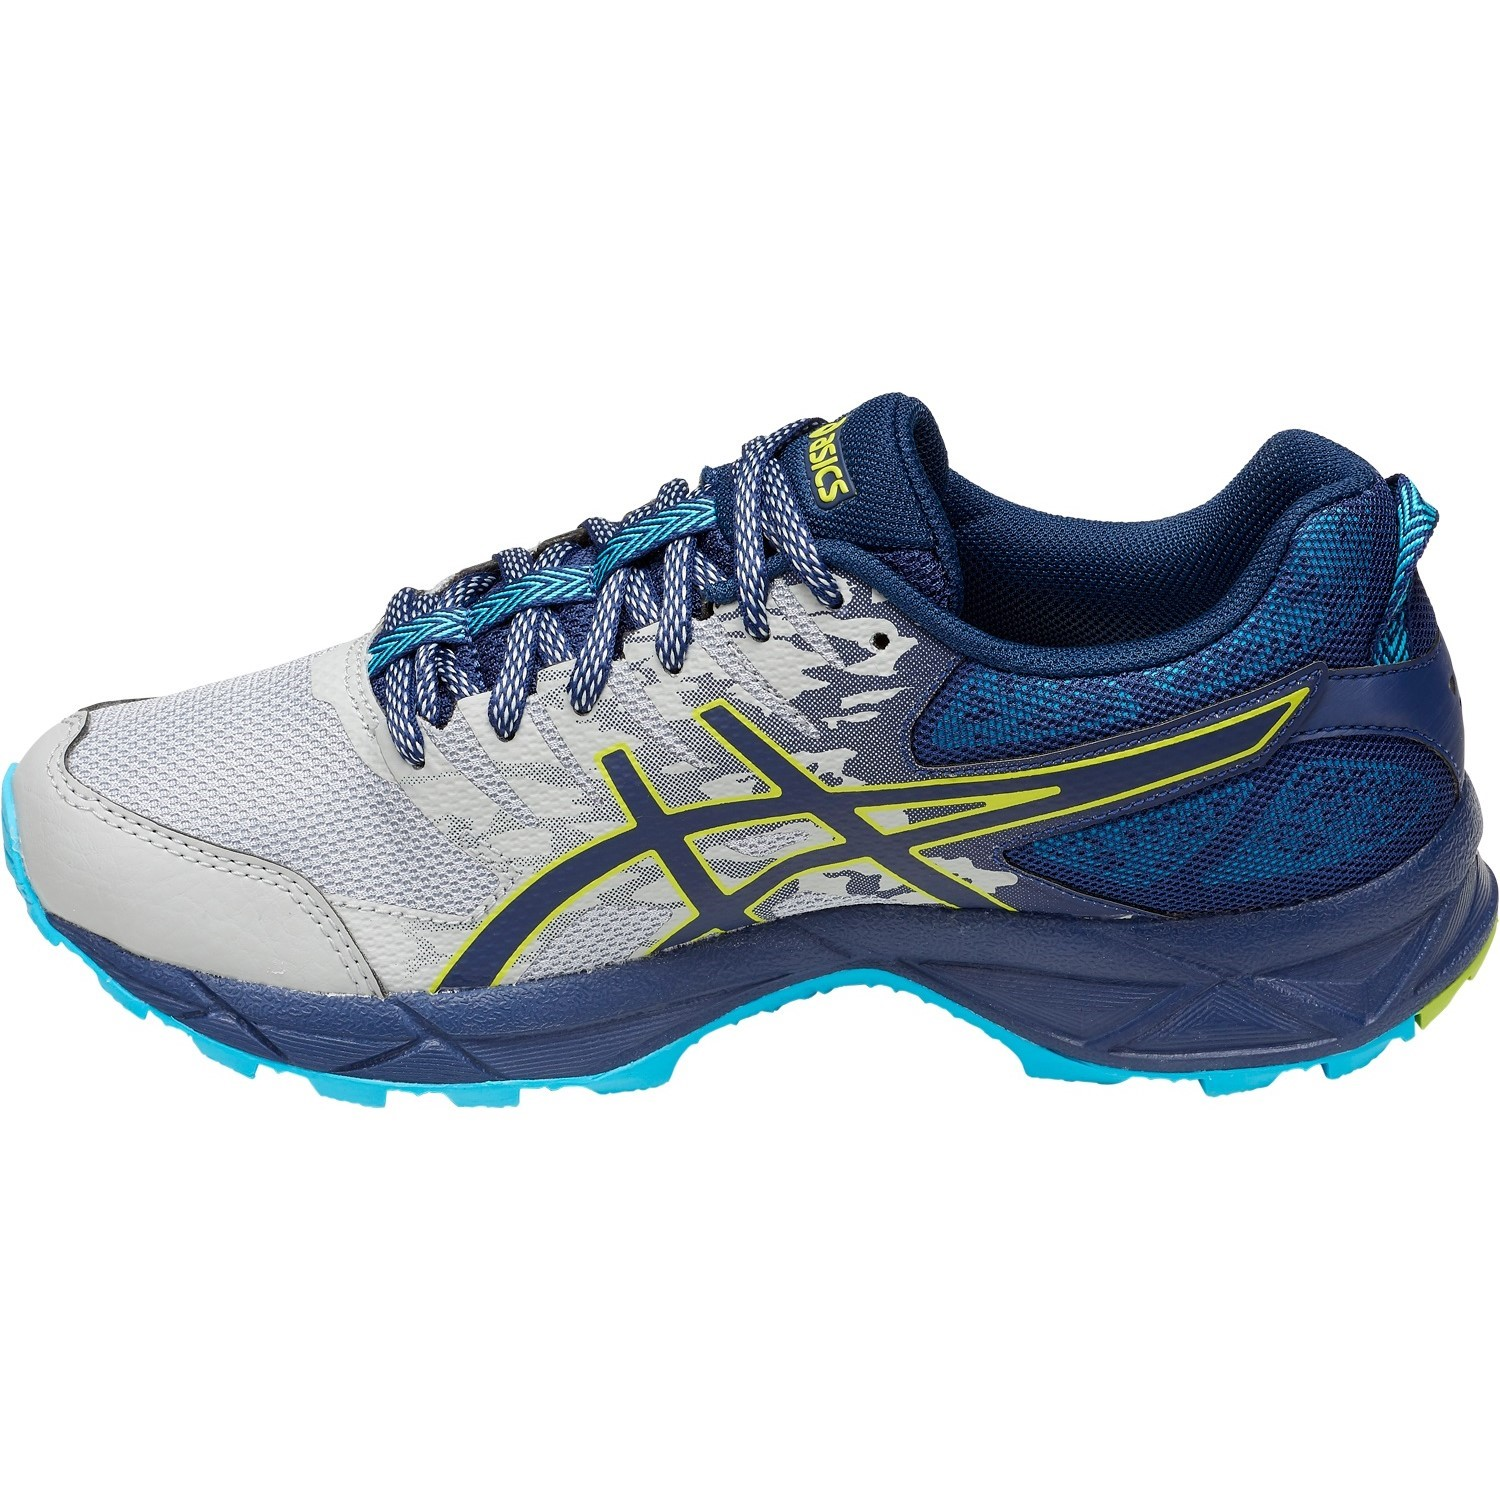 359784eb66c8 Asics Gel Sonoma 3 - Womens Trail Running Shoes - Mid Grey/Aquarium ...